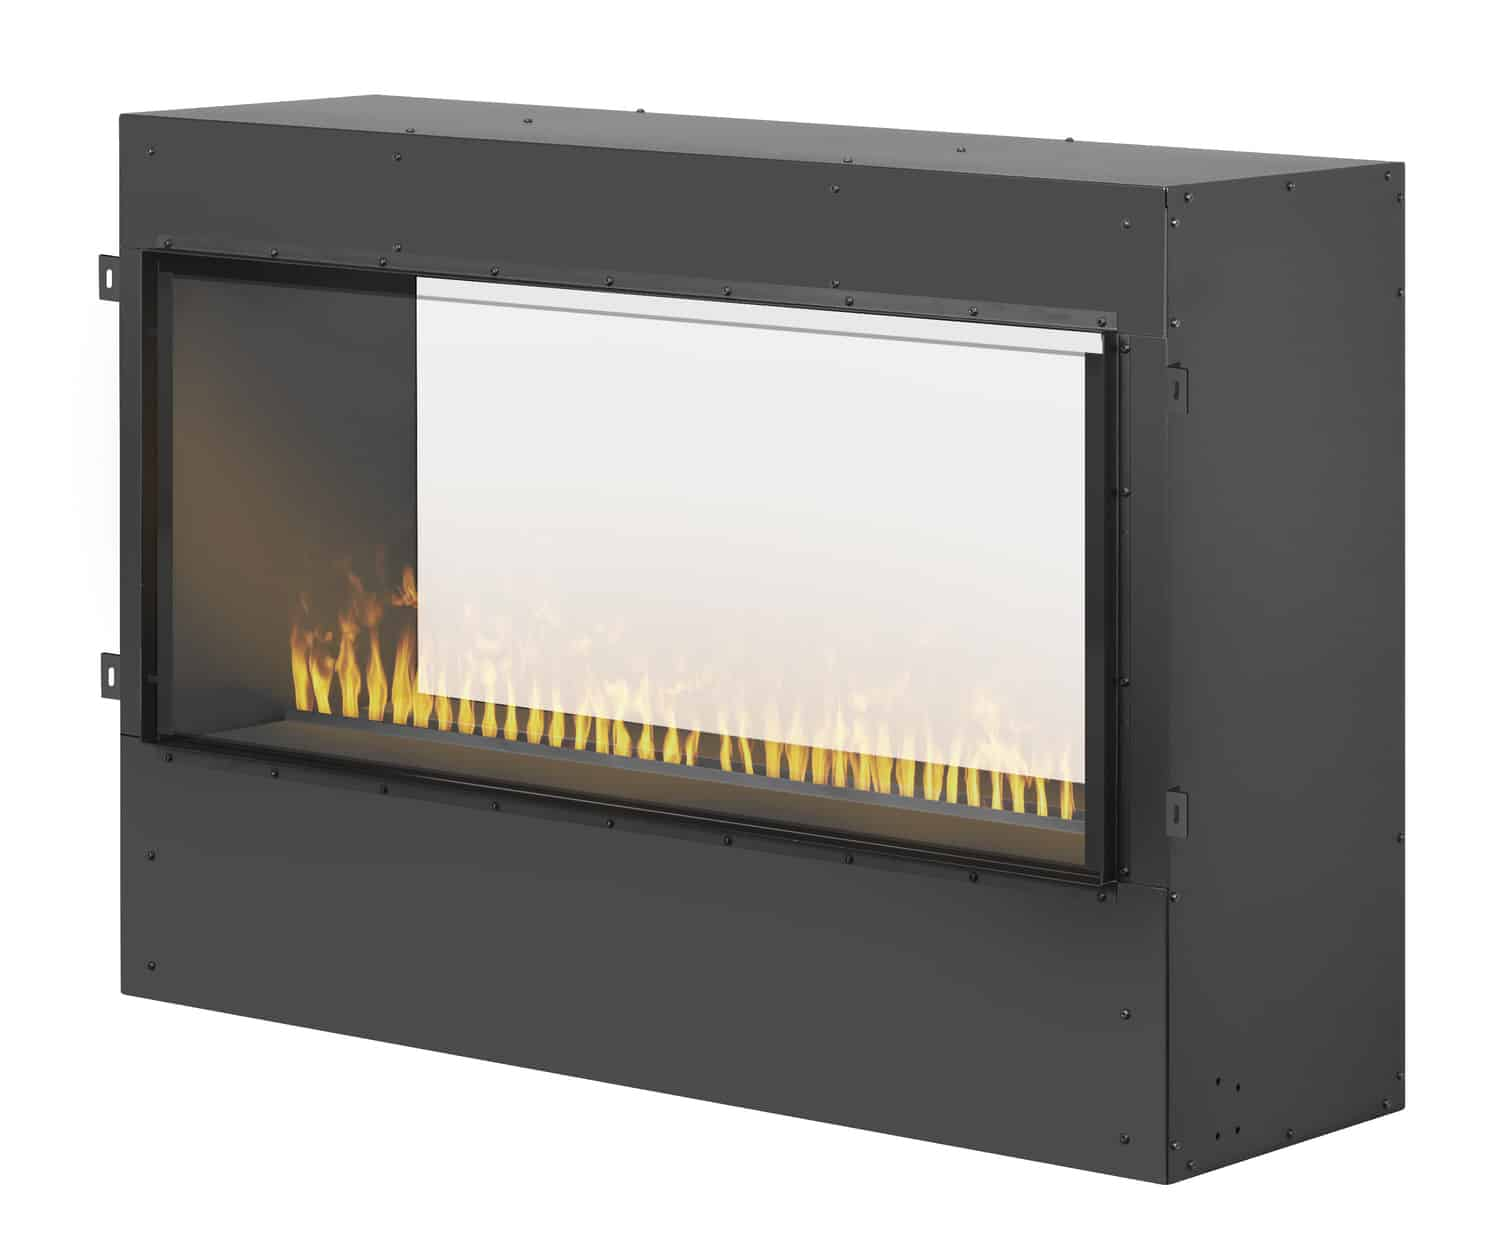 Dimplex Gbf Pro Opti Myst Built In Electric Fireplace